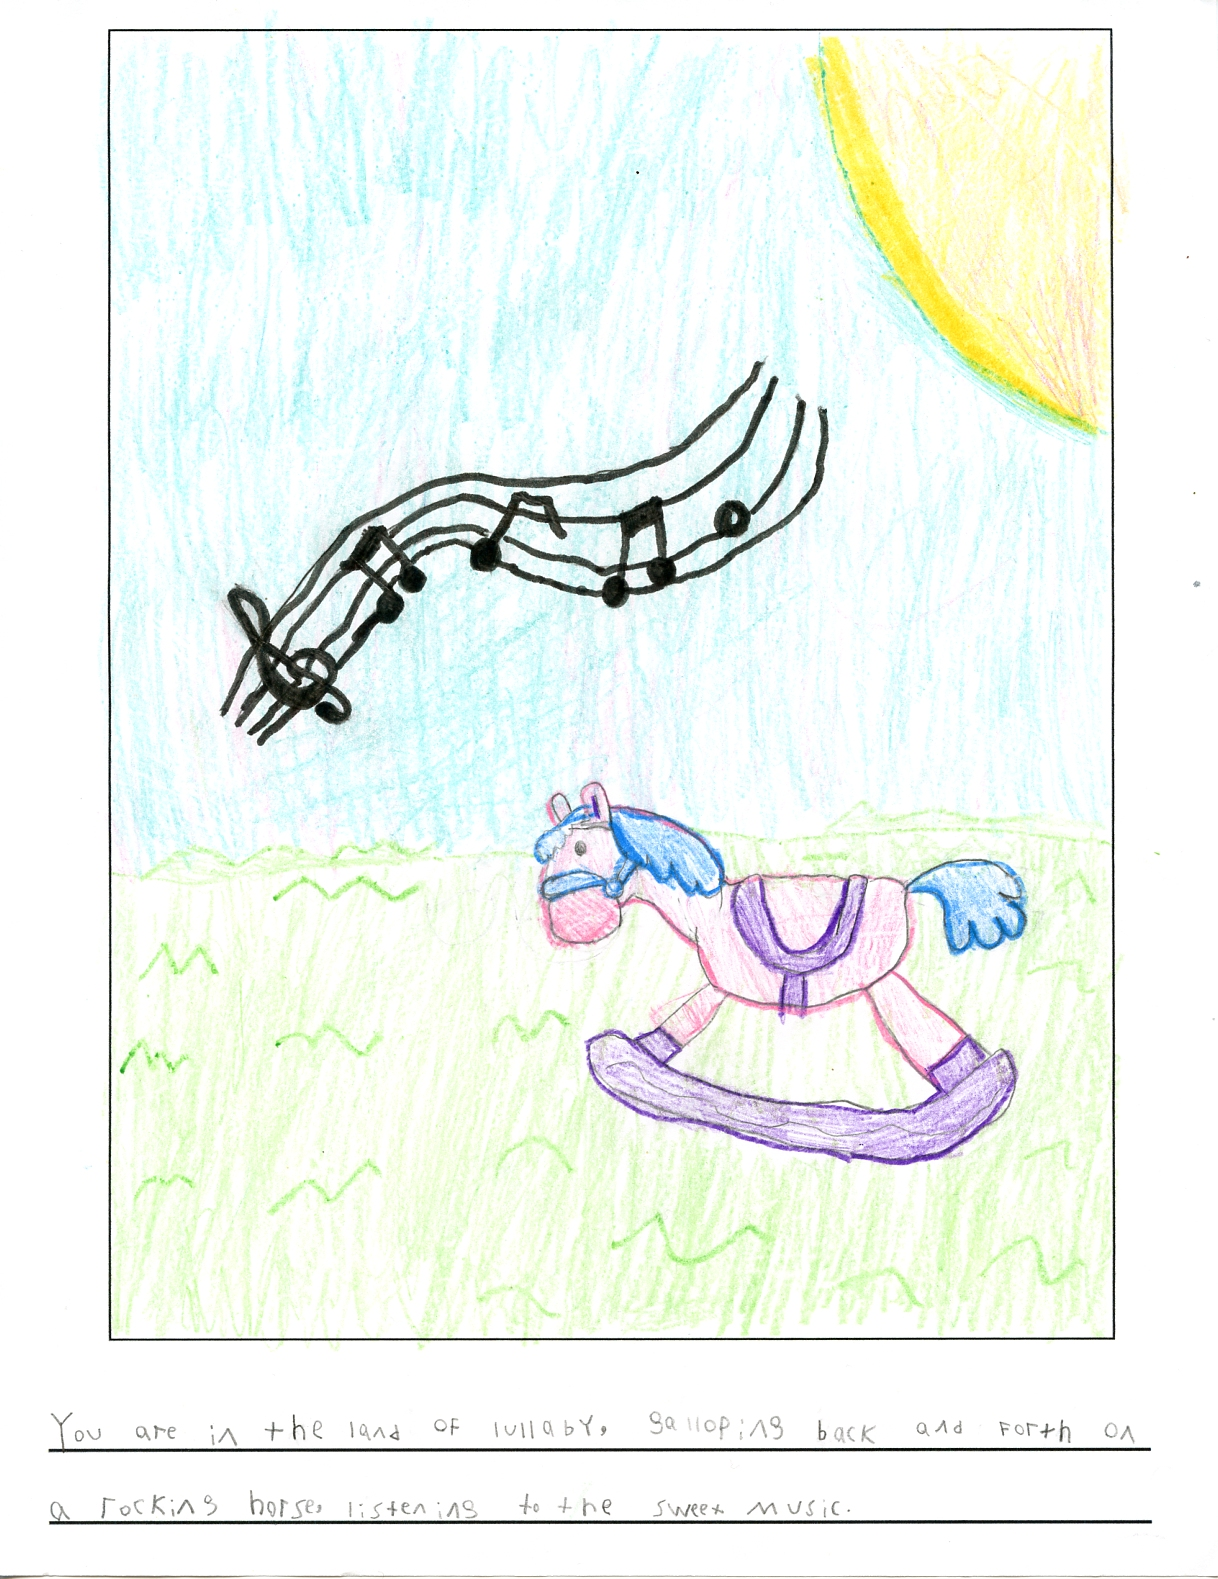 picture of a pink and purple rocking horse on green grass beneath musical notes floating thru the air on a sunny day